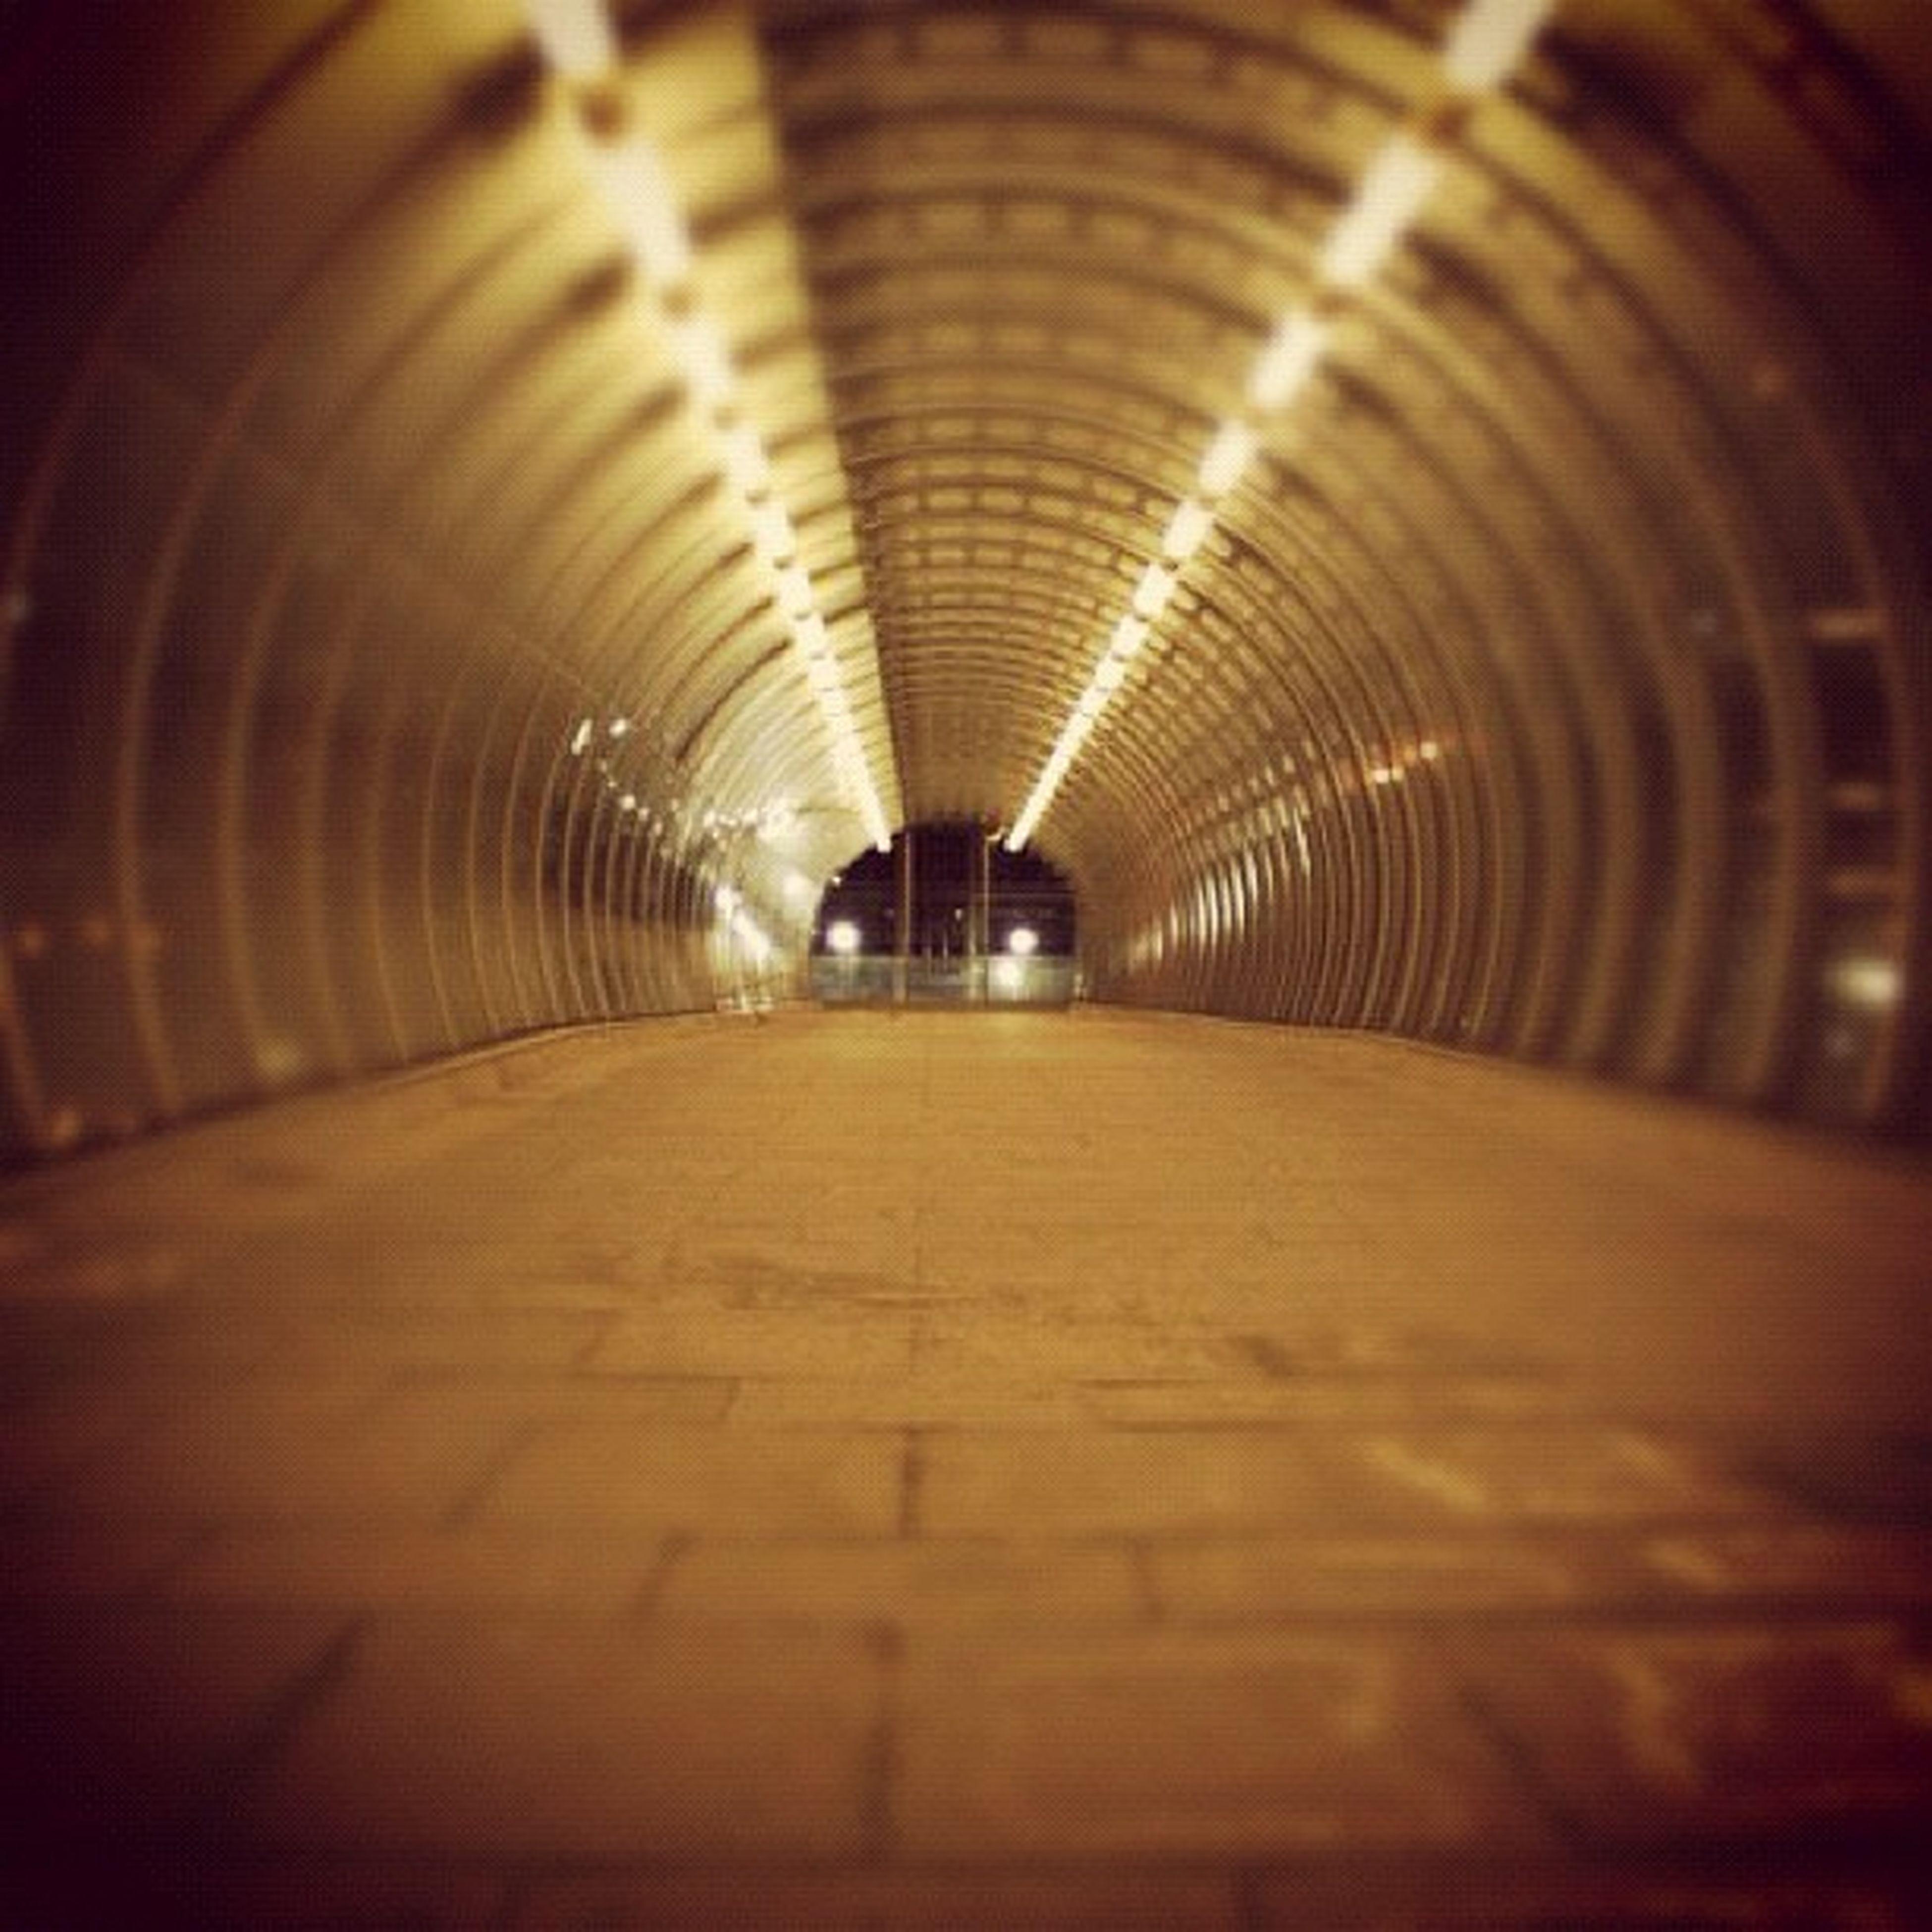 the way forward, indoors, illuminated, diminishing perspective, tunnel, vanishing point, lighting equipment, ceiling, empty, transportation, architecture, built structure, night, surface level, light - natural phenomenon, in a row, arch, electric light, corridor, long